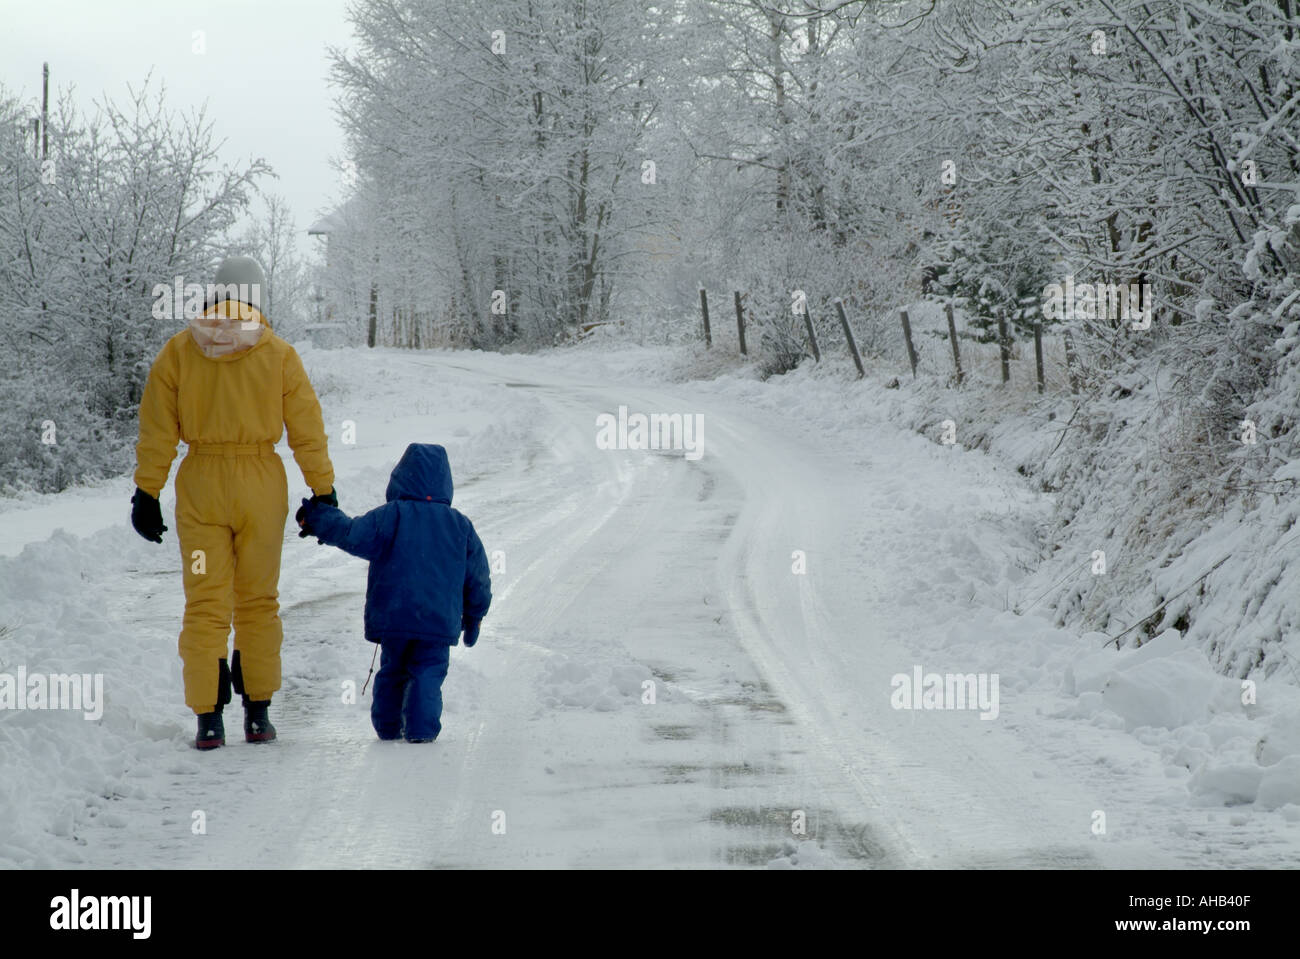 Mother and her three year old daughter walking along a snowy road, Selonnet, French Alps, France. Stock Photo